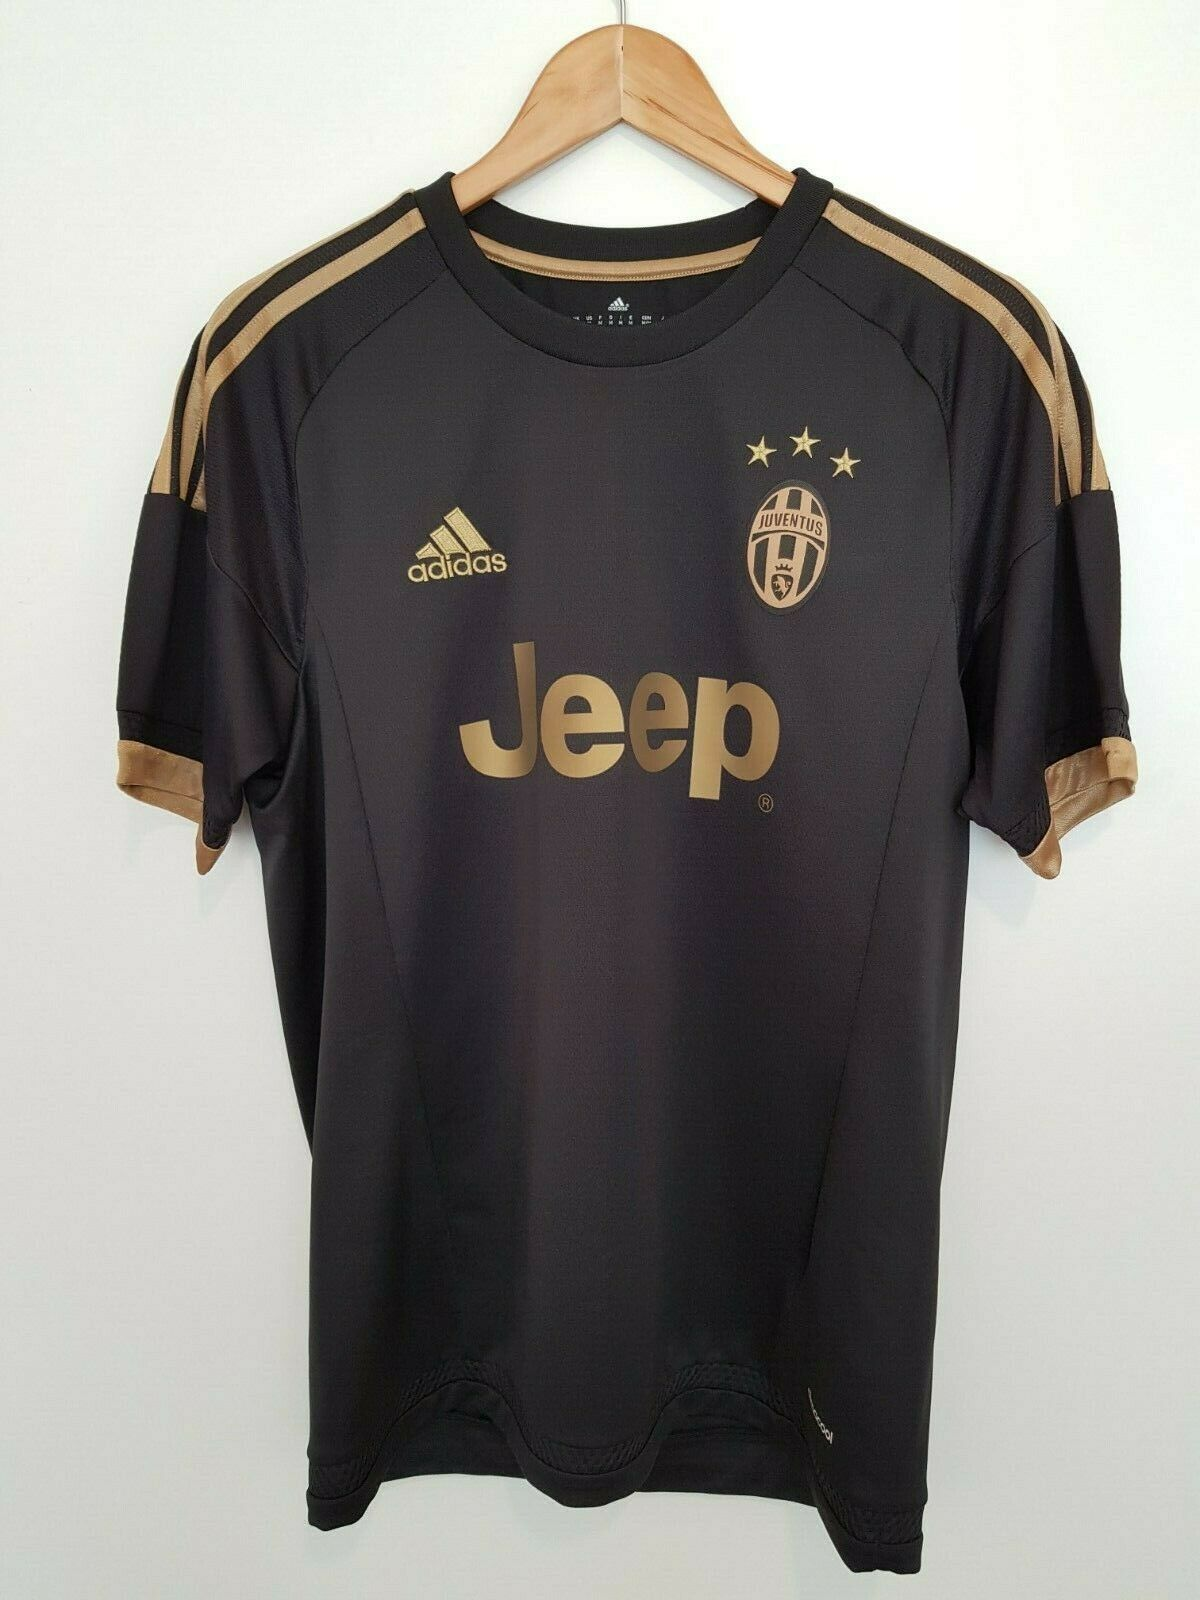 Juventus 2015 2016 Third Jersey Football Shirt Maglia Maillot Adidas Bnwt M For Sale Online